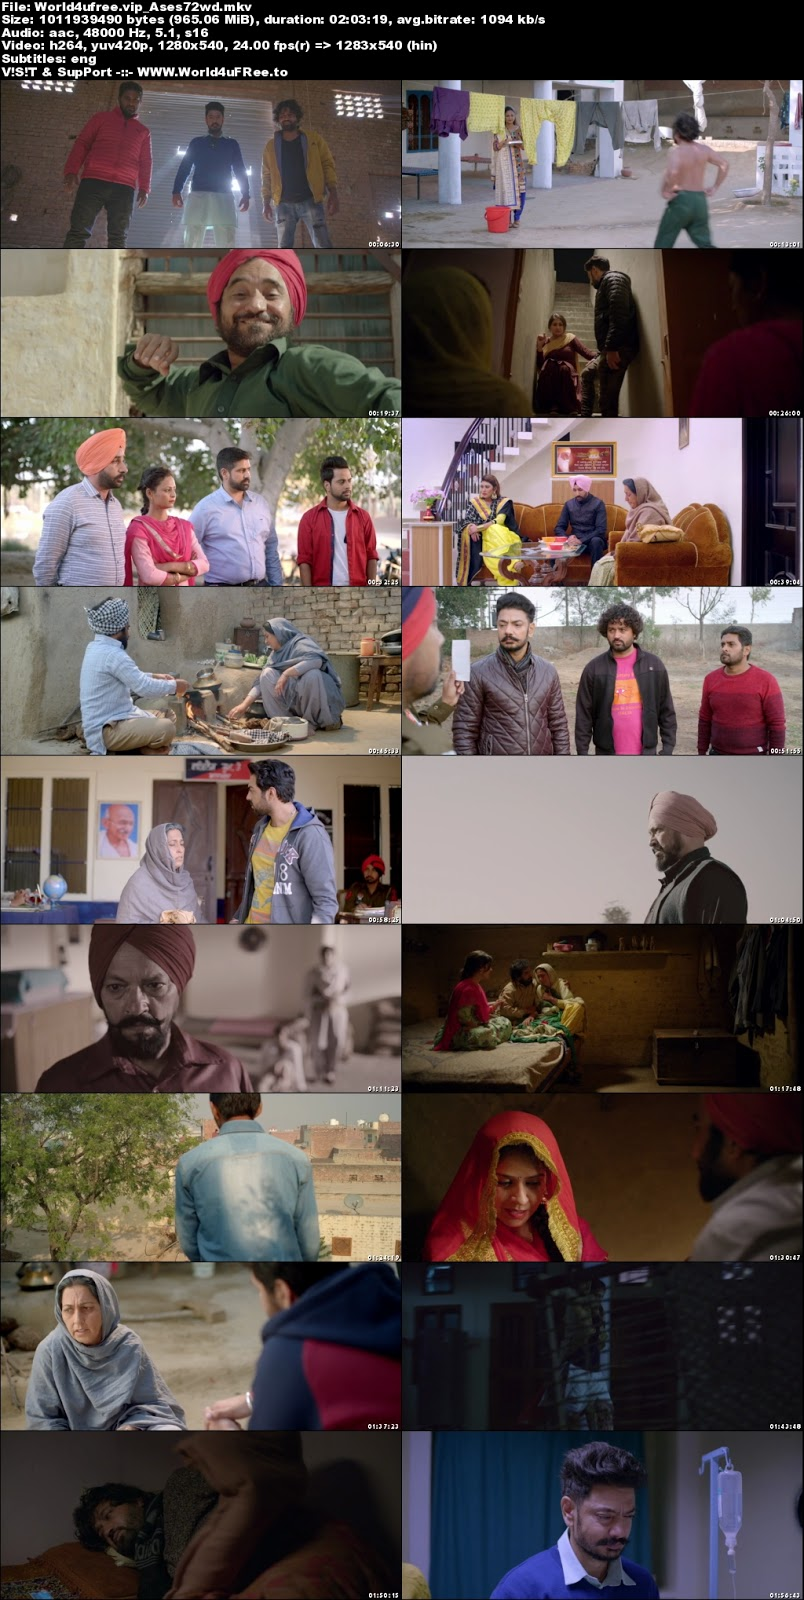 Asees 2018 Punjabi 720p HDRip 950Mb Download world4ufree.vip , hindi movie Asees 2018 hdrip 720p bollywood movie Asees 2018 720p LATEST MOVie Asees 2018 720p DVDRip NEW MOVIE Asees 2018 720p WEBHD 700mb free download or watch online at world4ufree.vip